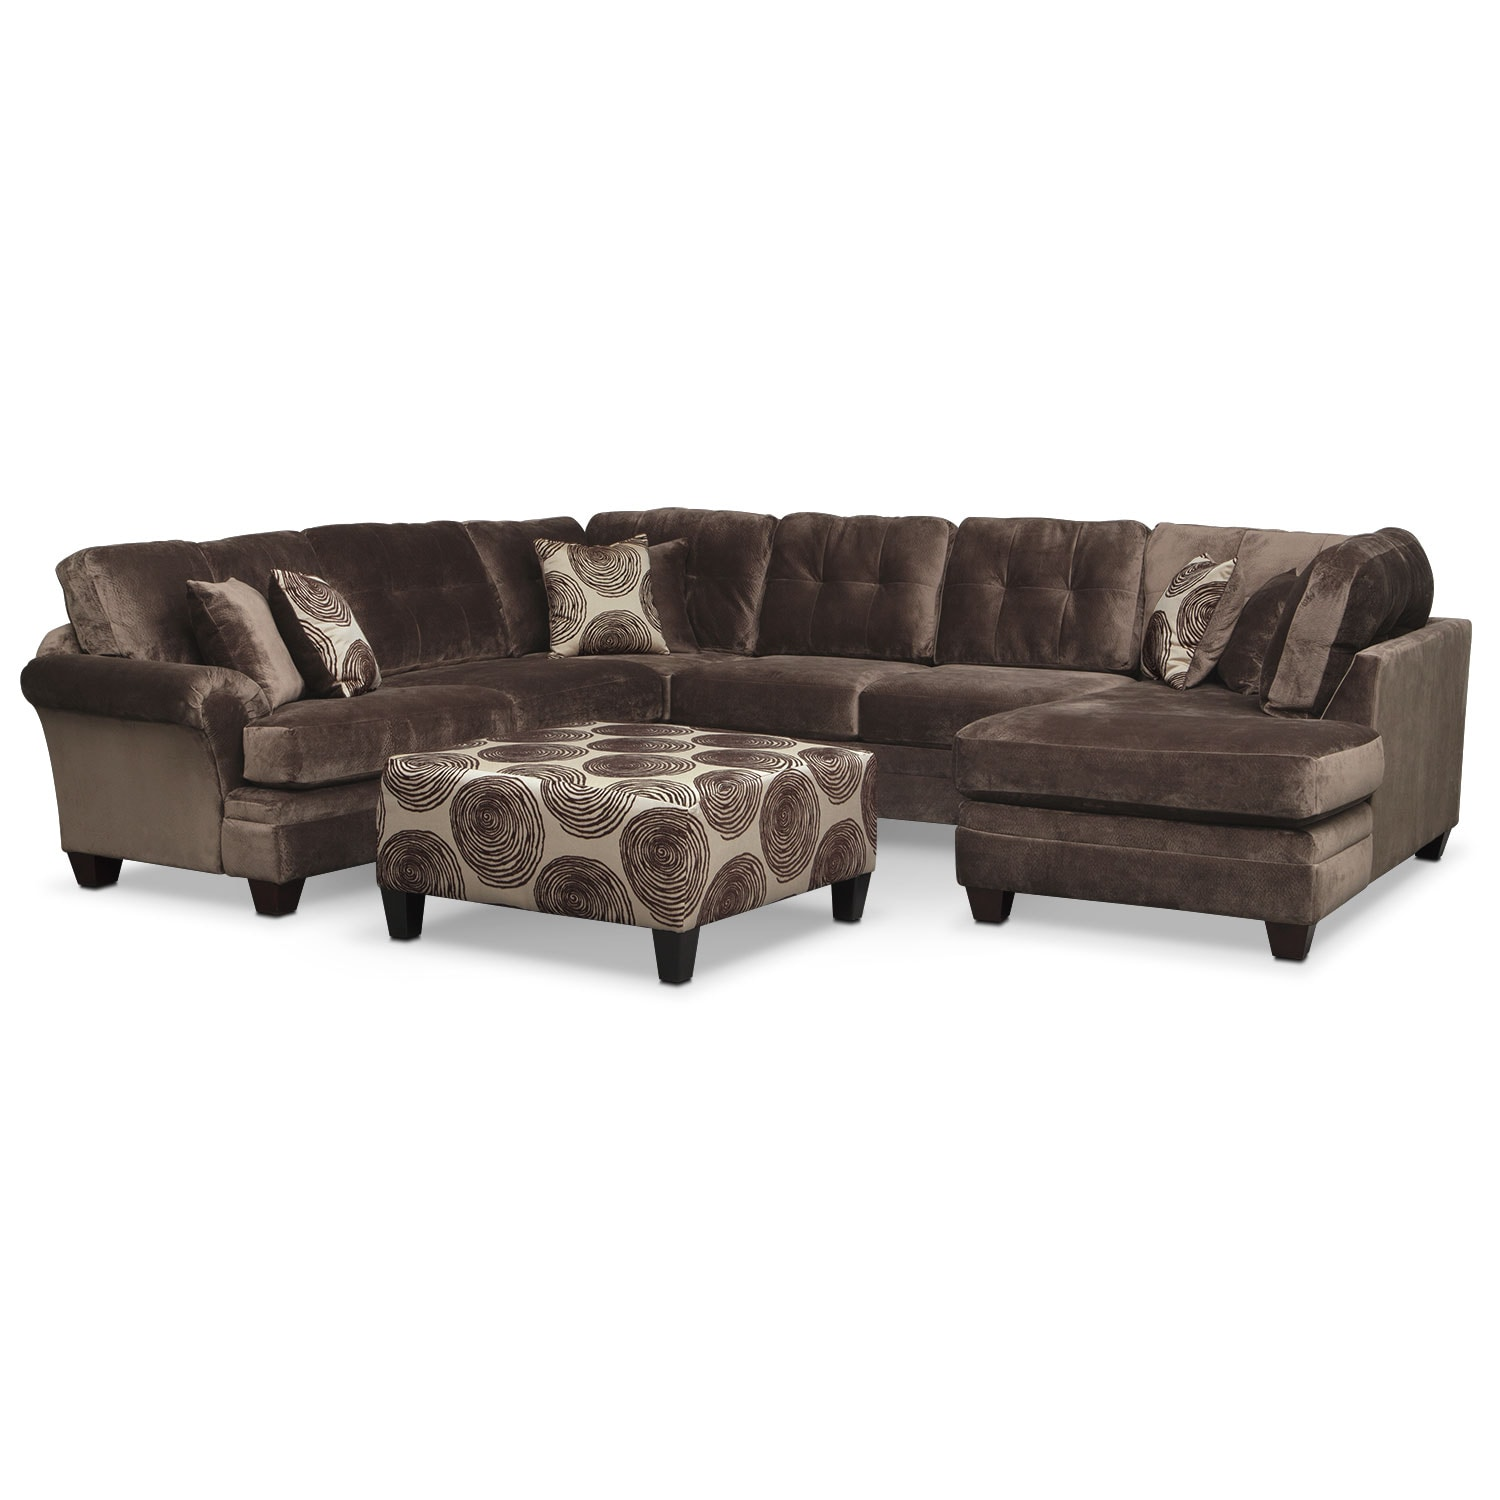 Living Room Loveseats Living Room Furniture Packages Value City Furniture